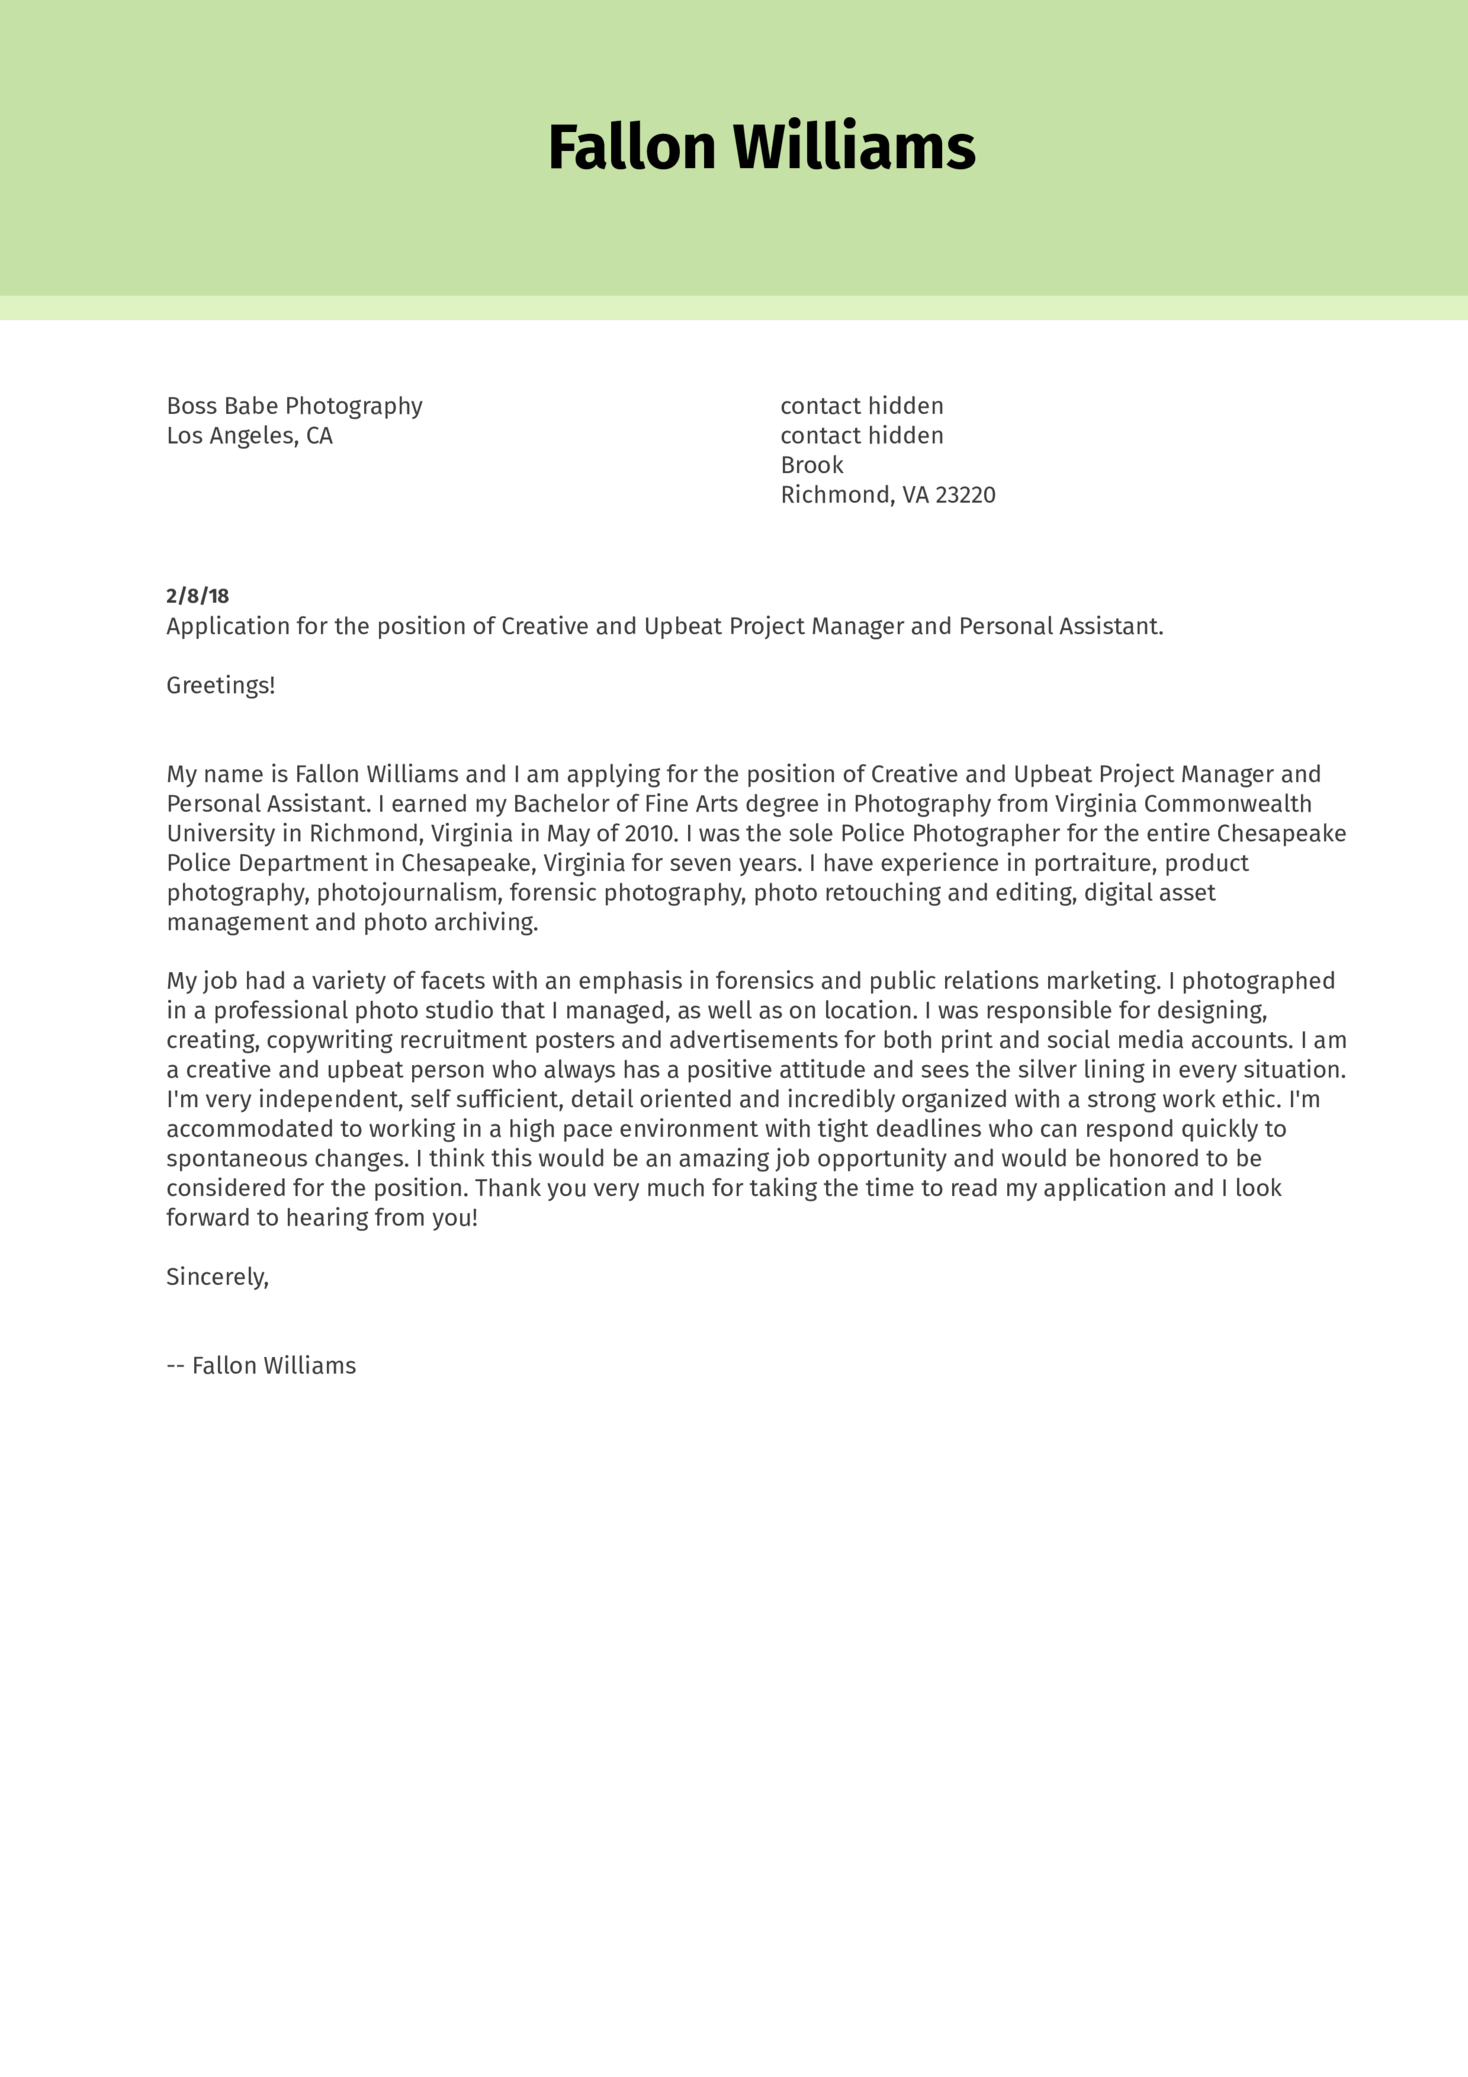 Cover Letter Examples by Real People: Personal creative assistant ...